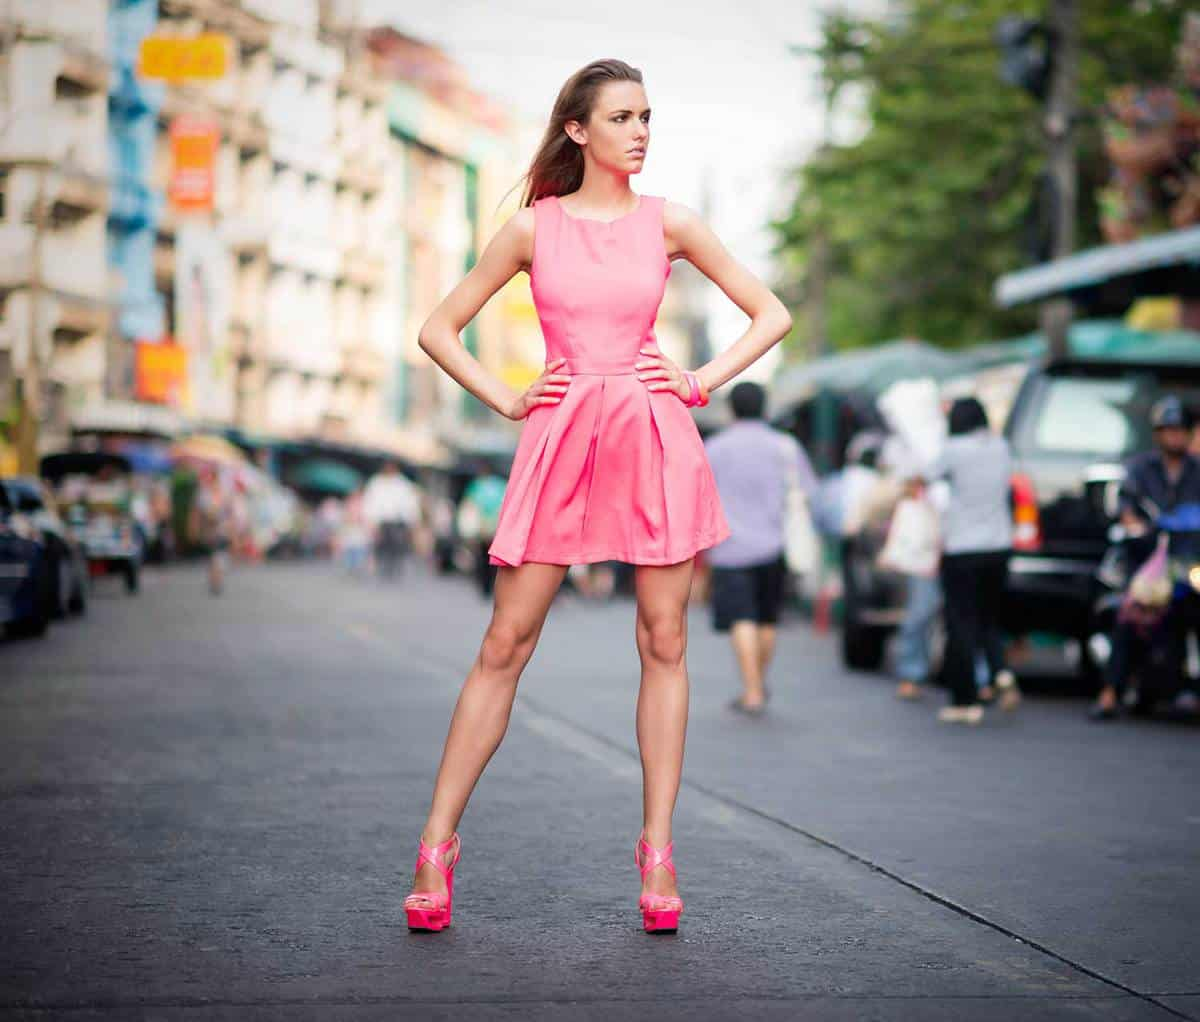 Beautiful model in pink dress and sandals posing in a side street